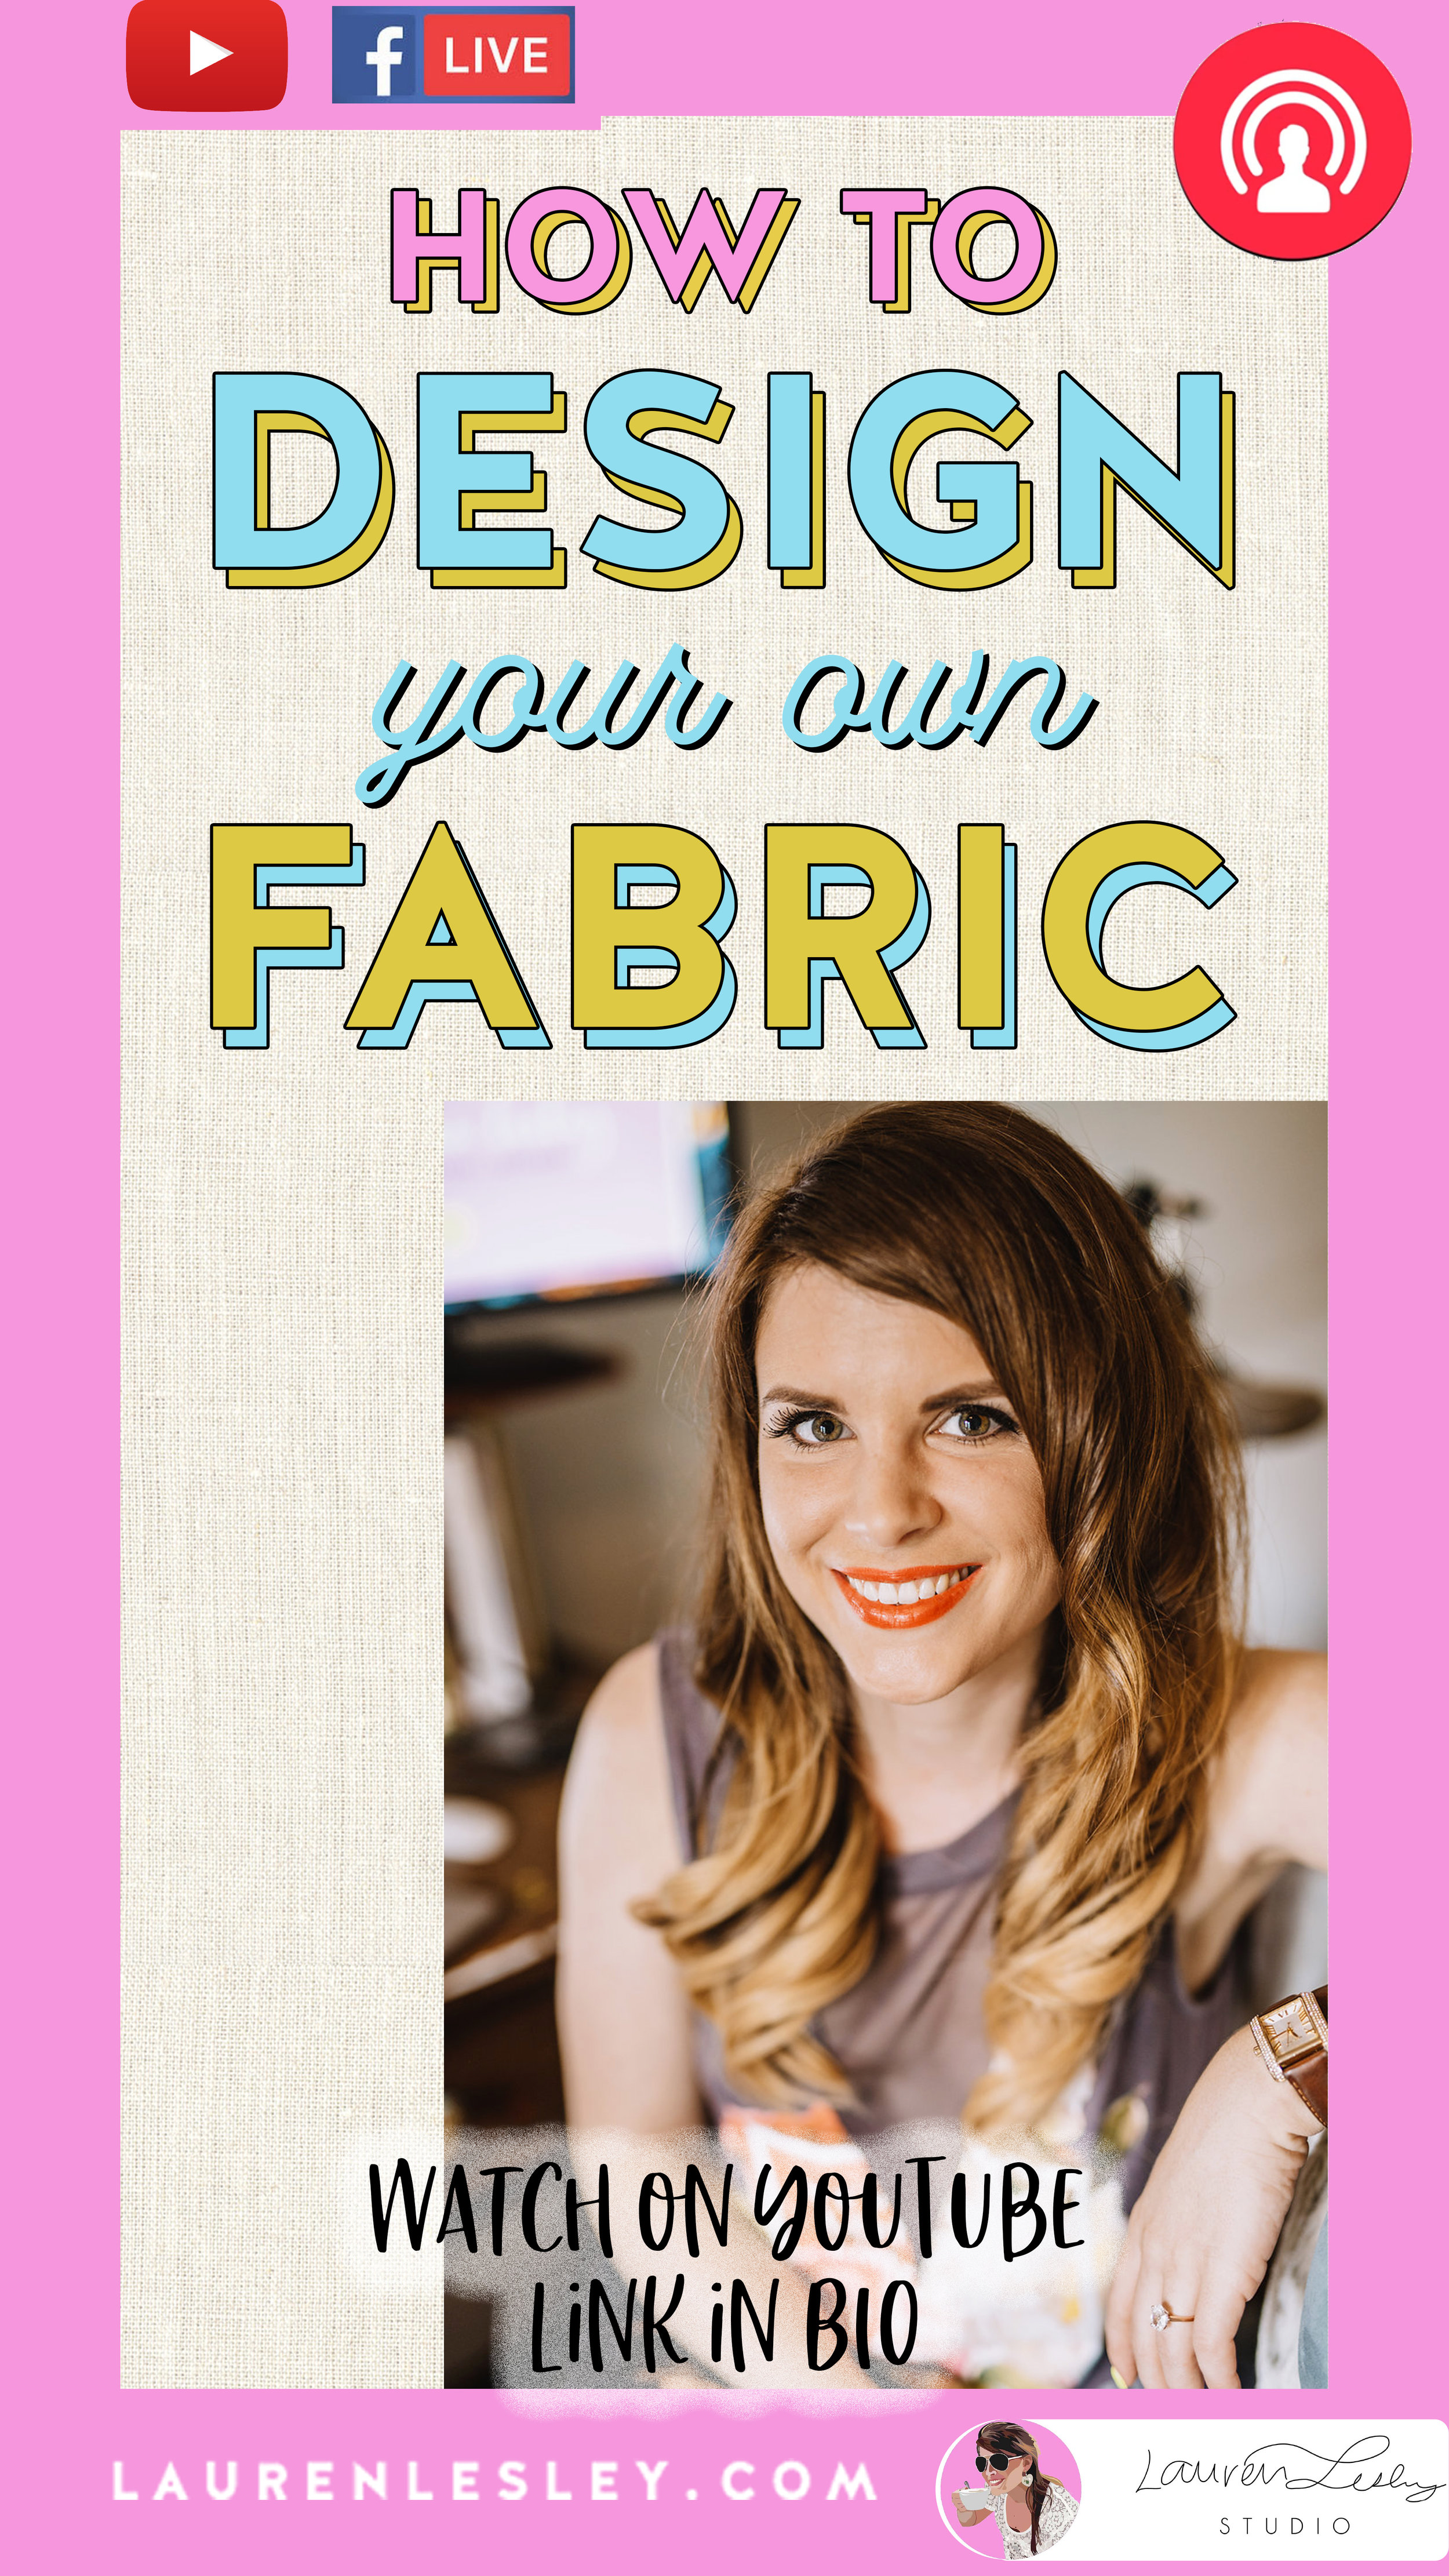 How To Design Your Own Fabric - Check out my step-by-step guide to my Fabric Design Tutorial.